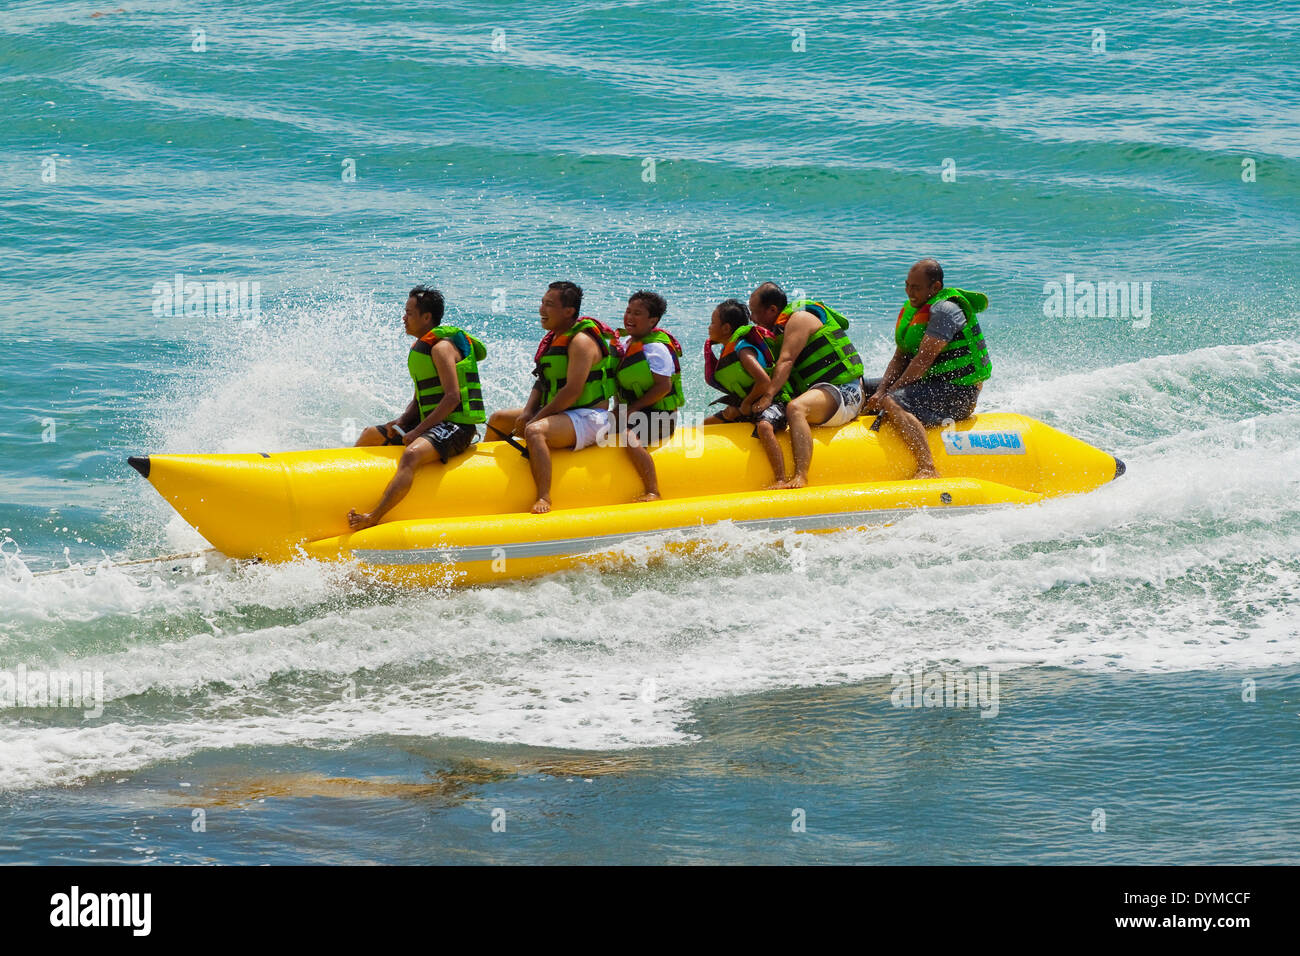 Tourists on inflatable 'banana' at this popular surf break & small resort; Batu Karas, Pangandaran, West Java, Java, Indonesia - Stock Image